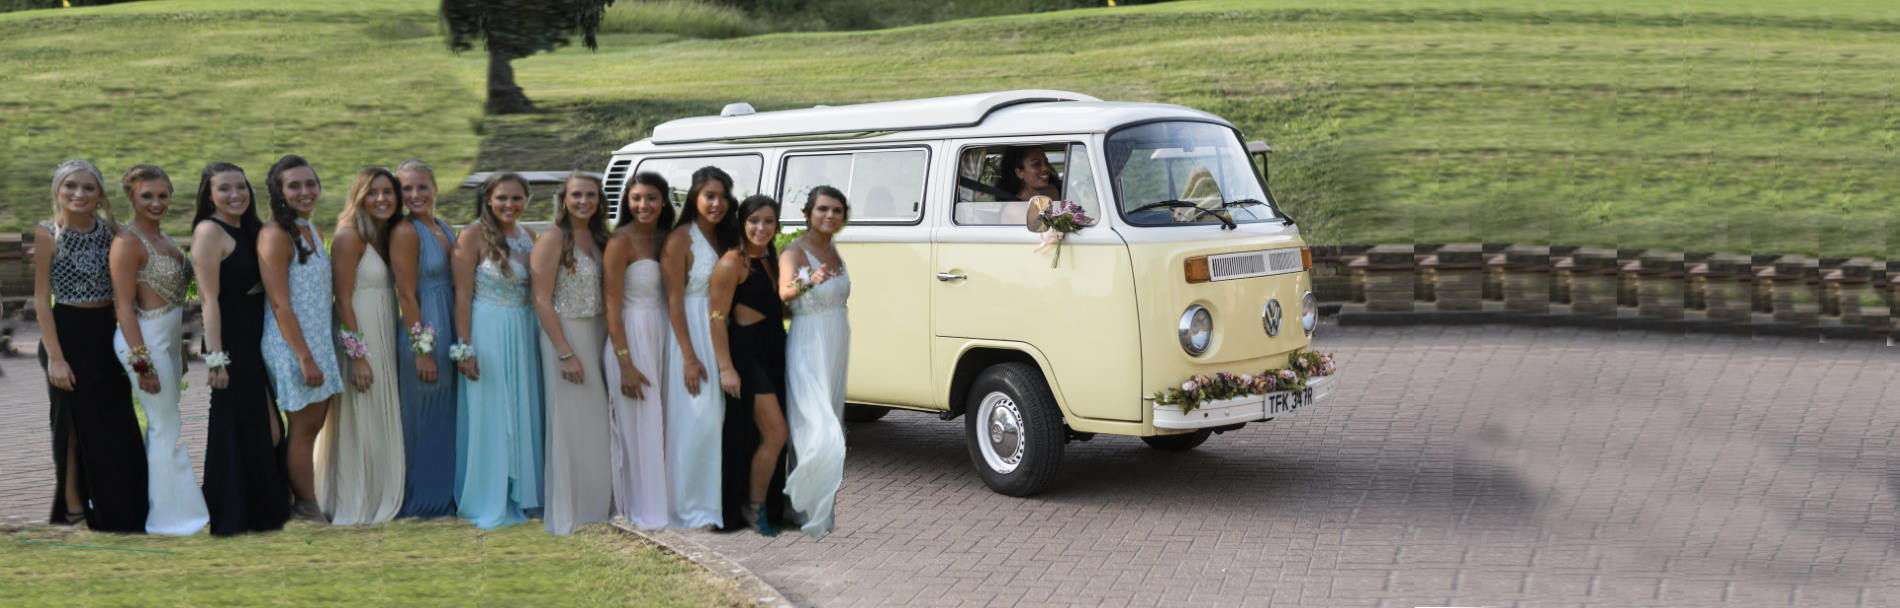 self-drive classic VW campervan prom hire